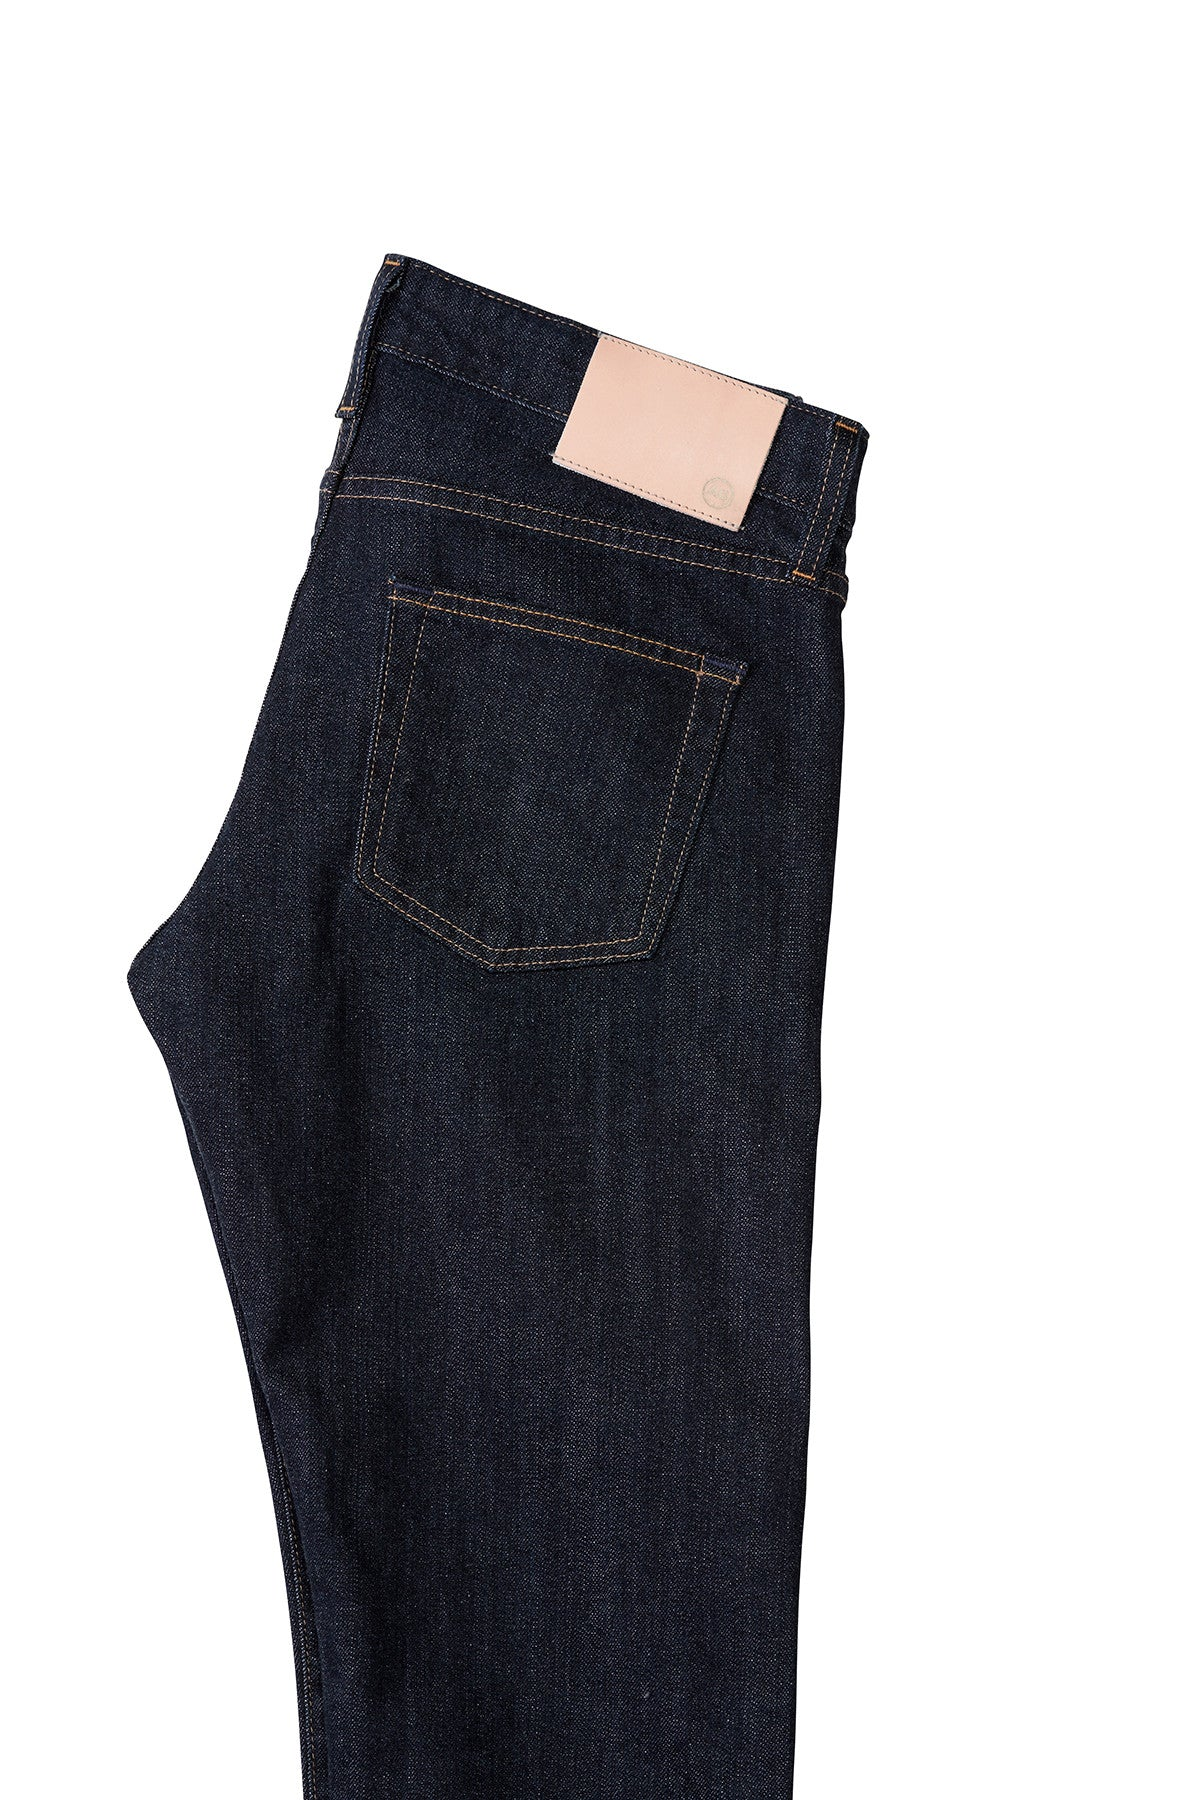 AG 'Tellis' Slim Fit Jeans in Dark Indigo (Alpha)